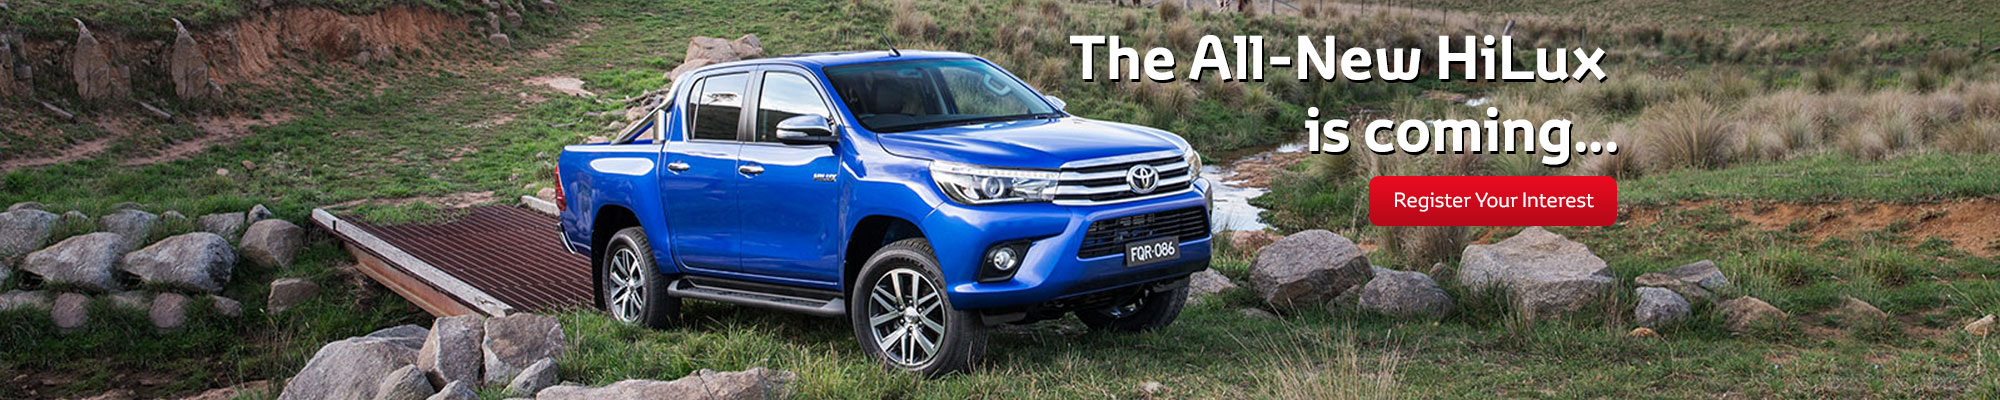 banner-new-hilux